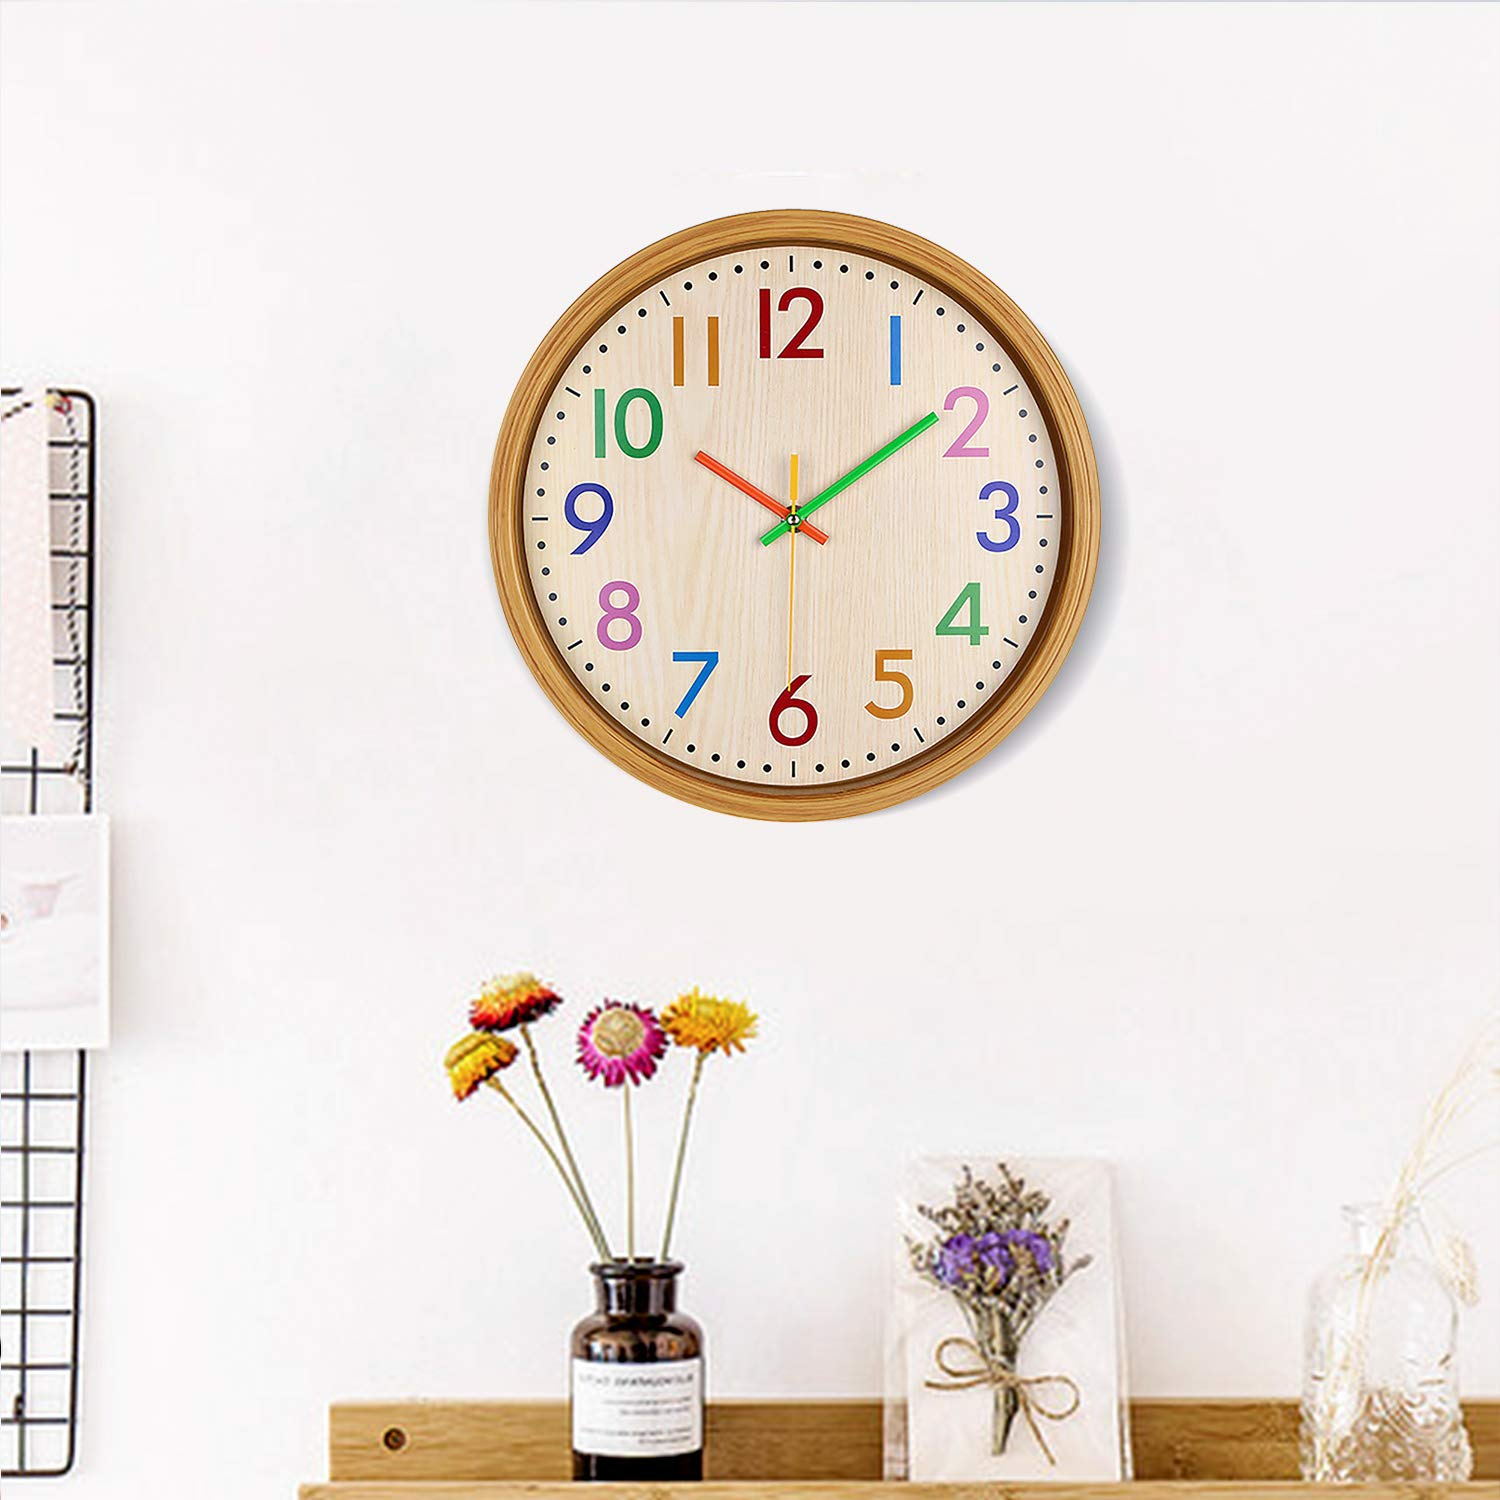 AIOLOC Kids Eco-friendlly Imitate Wood Wall Clock 12.5 Inch Silent Colorful Decorative Battery Operated Clocks Easy To Read for Children's Room by Ticktar (Image #7)